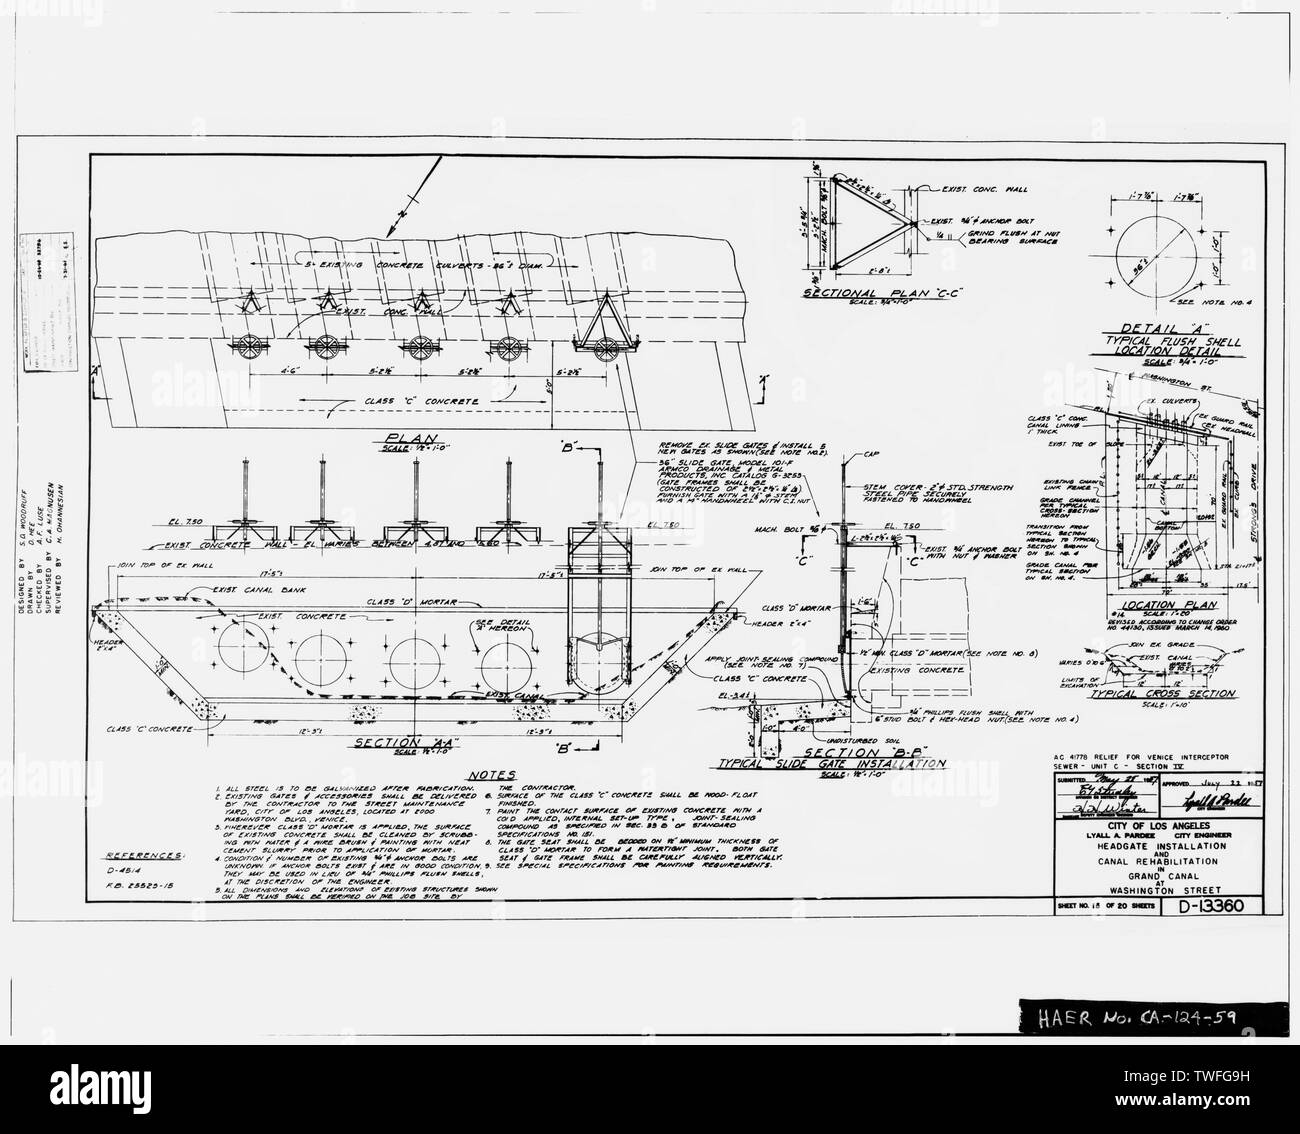 PLANS FOR HEADGATE INSTALLATION IN GRAND CANAL AT WASHINGTON STREET Plan Sheet D-13360, Sheet No. 15 of 20 (delineated by D. Hee, May 1957) - Venice Canals, Community of Venice, Los Angeles, Los Angeles County, CA - Stock Image